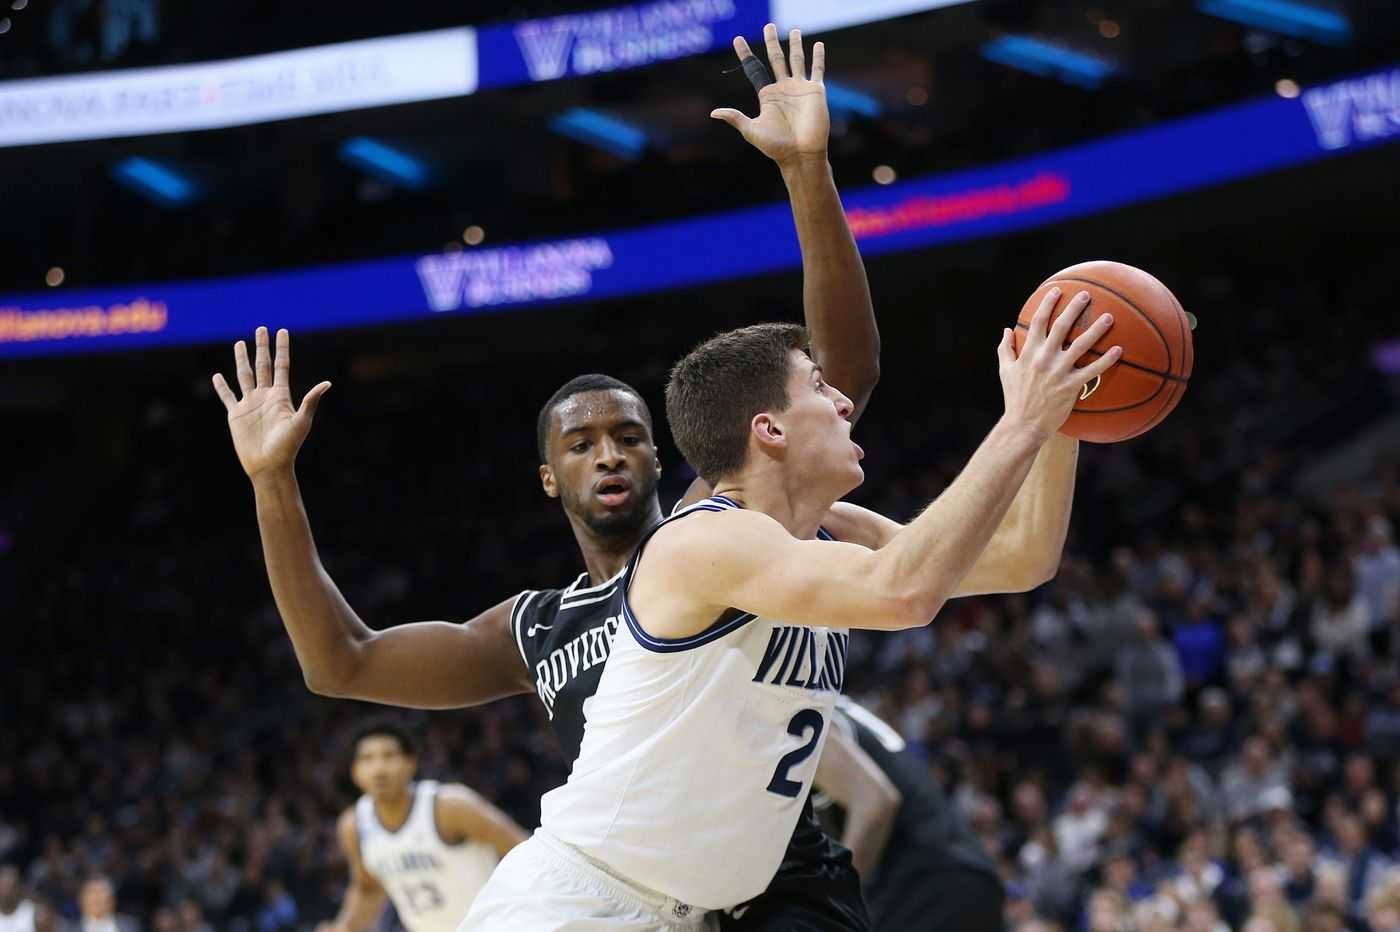 Villanova's Collin Gillespie follows in his former teammates' footsteps with probing style of play